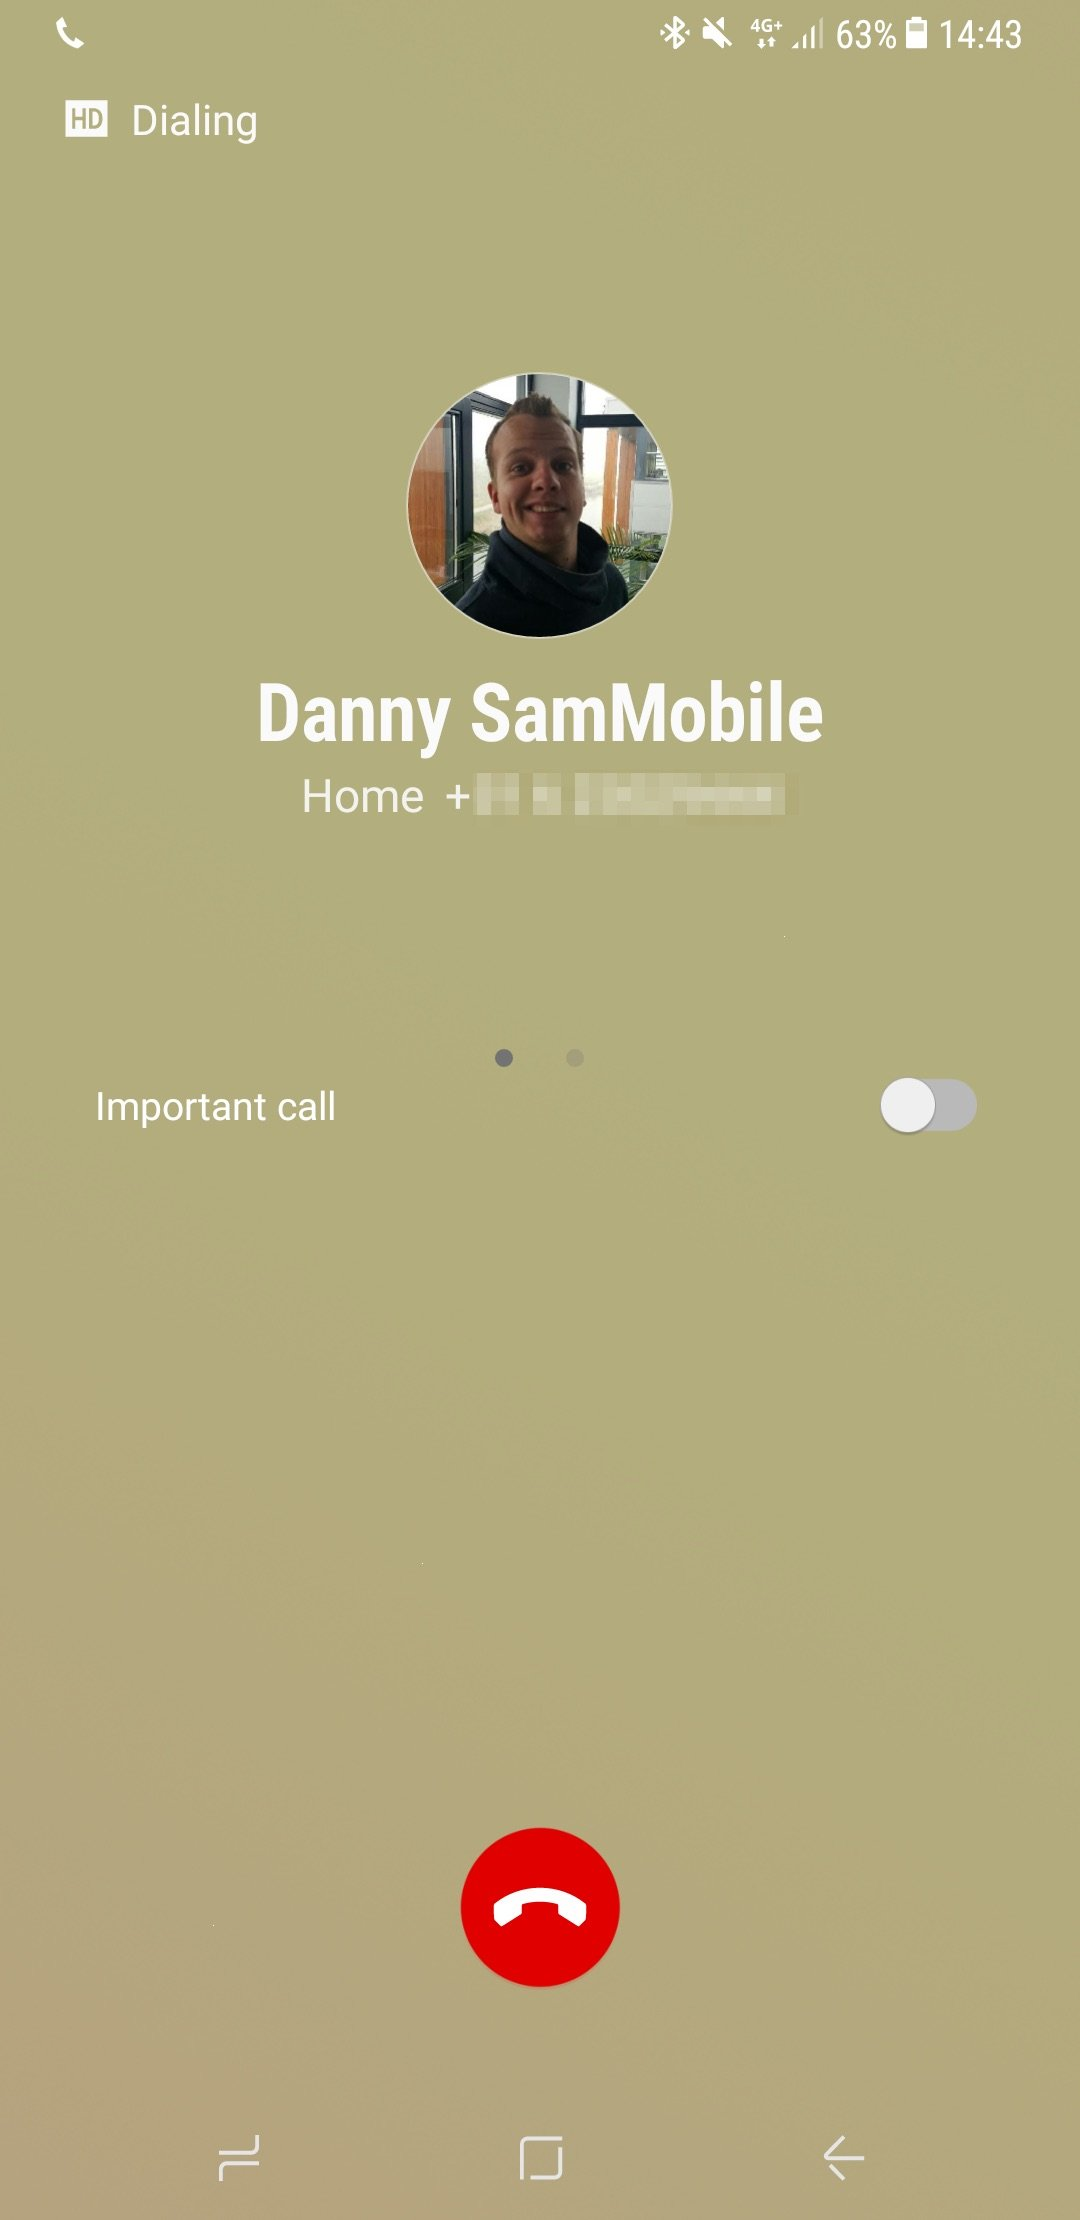 Galaxy S8 Tip: Let the callee know that your call is important using